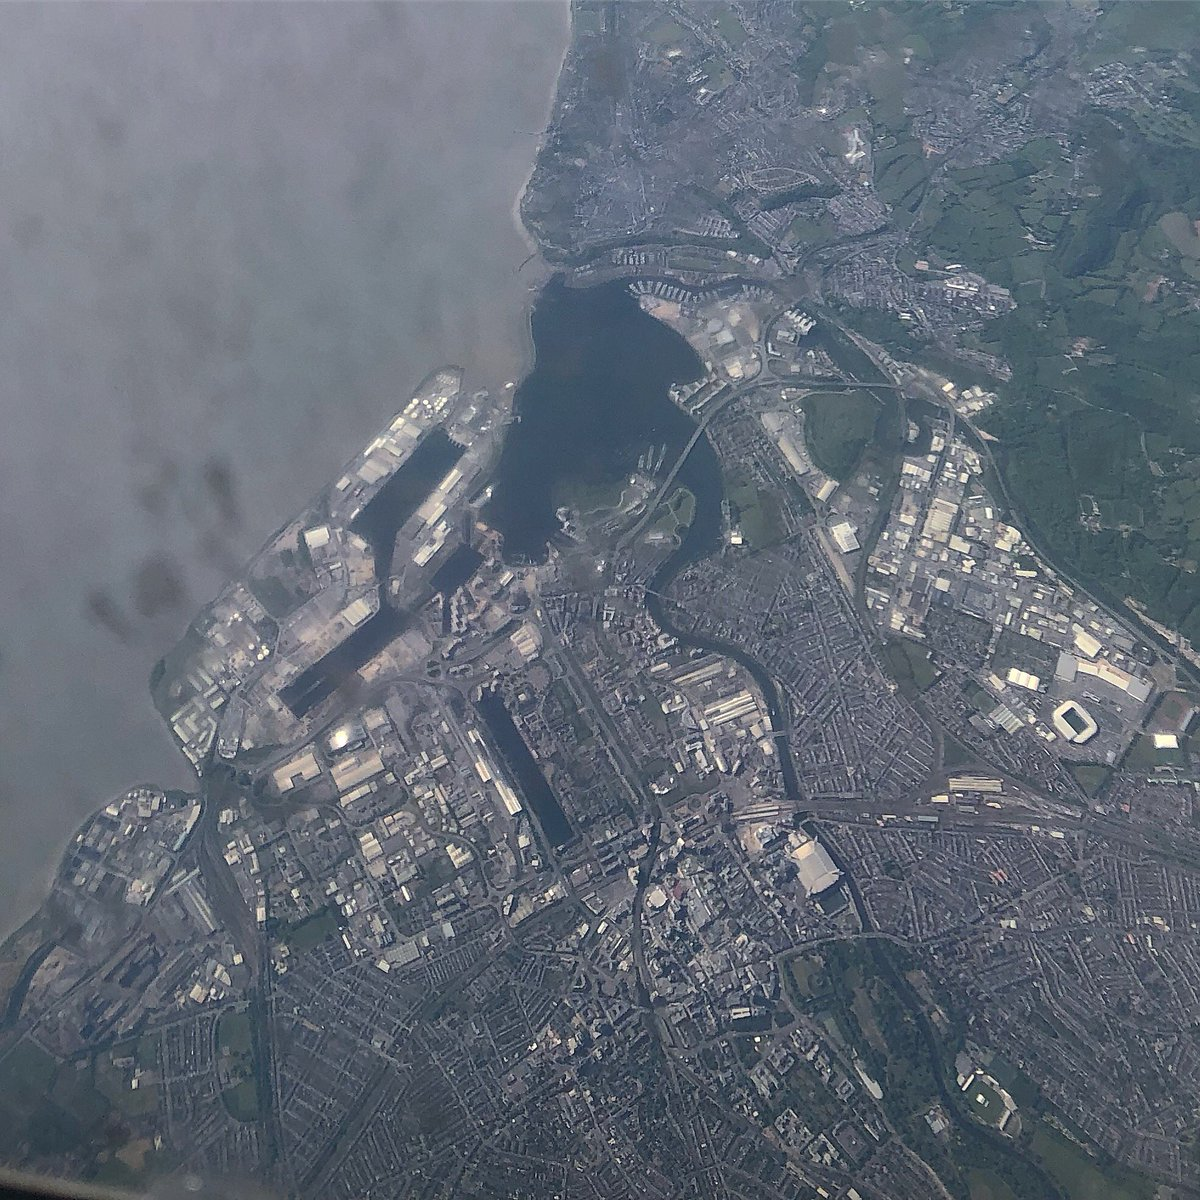 #Cardiff from 37,000 feet. @ILovesTheDiff<br>http://pic.twitter.com/nWLsH5eHfa